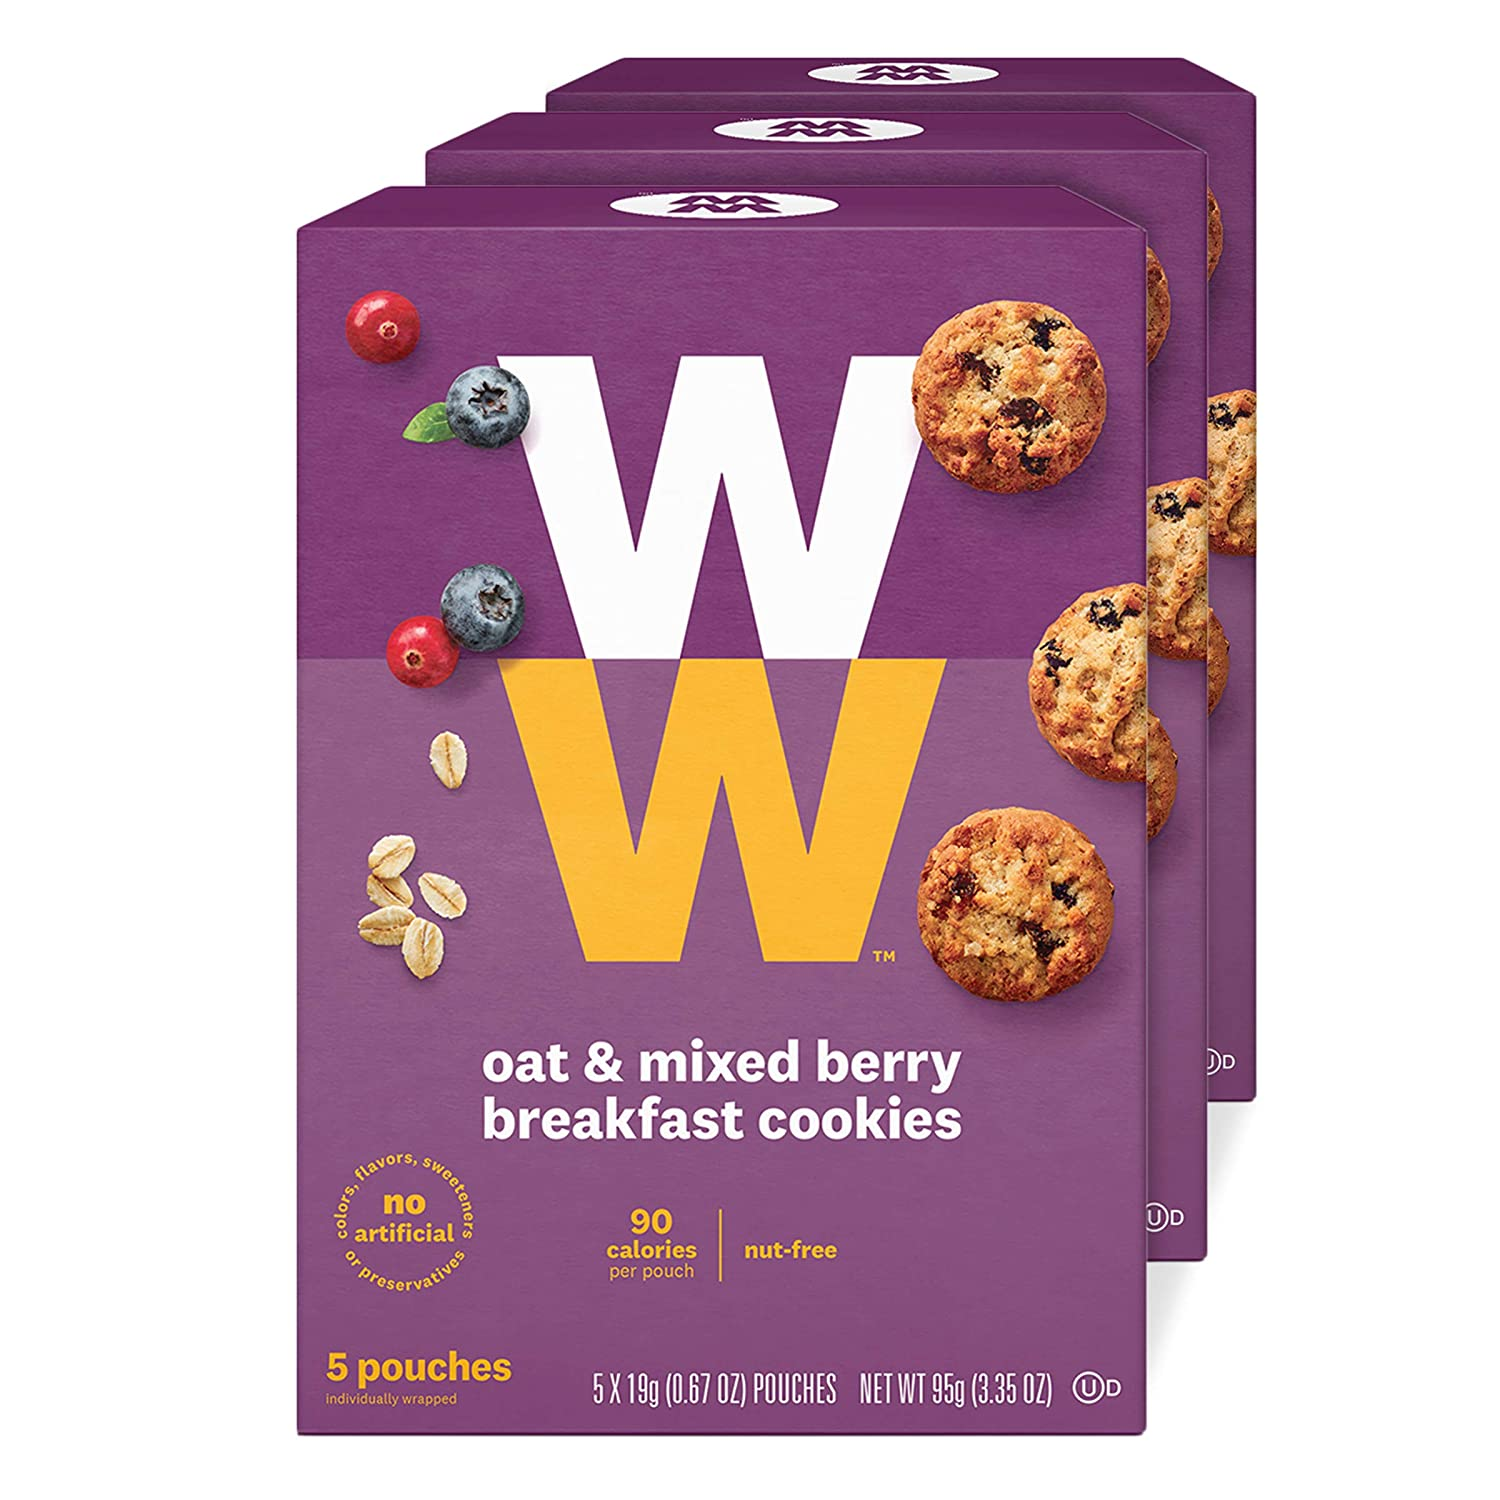 WW Oat & Mixed Berry Breakfast Cookies - 3 SmartPoints, Nut Free - 3 Boxes (15 Count Total) - Weight Watchers Reimagined